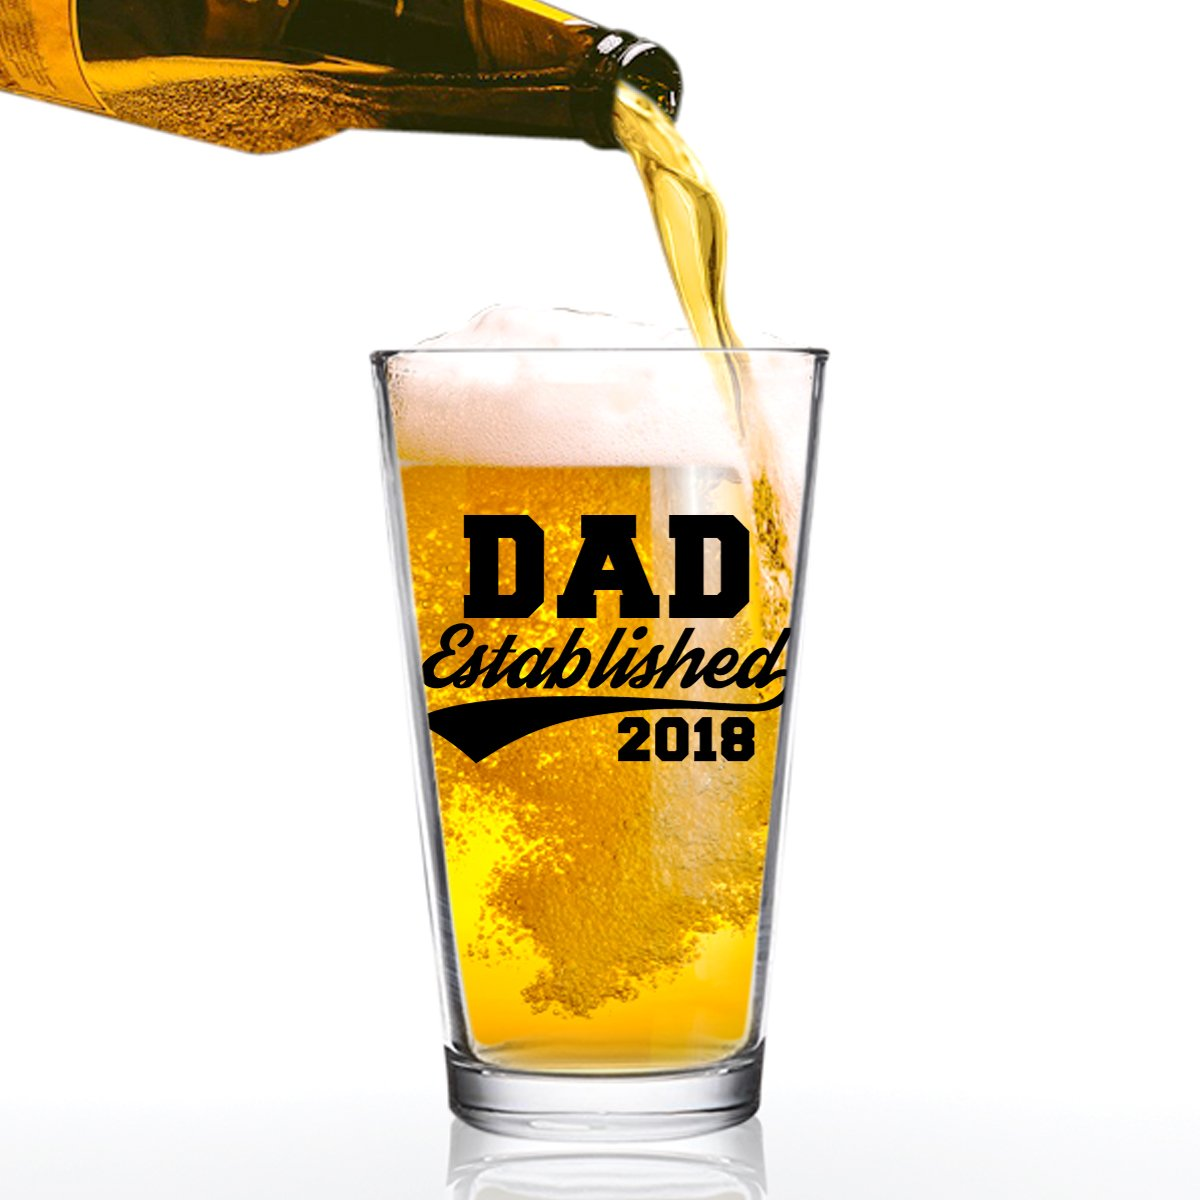 Dad Established 2018 Funny Beer Glass -16 oz quality glass - Beer Glass for the Best Dad Ever - New Dad Beer Glass Gift - Affordable Fathers Day Beer Gifts for Dads or Stepdad